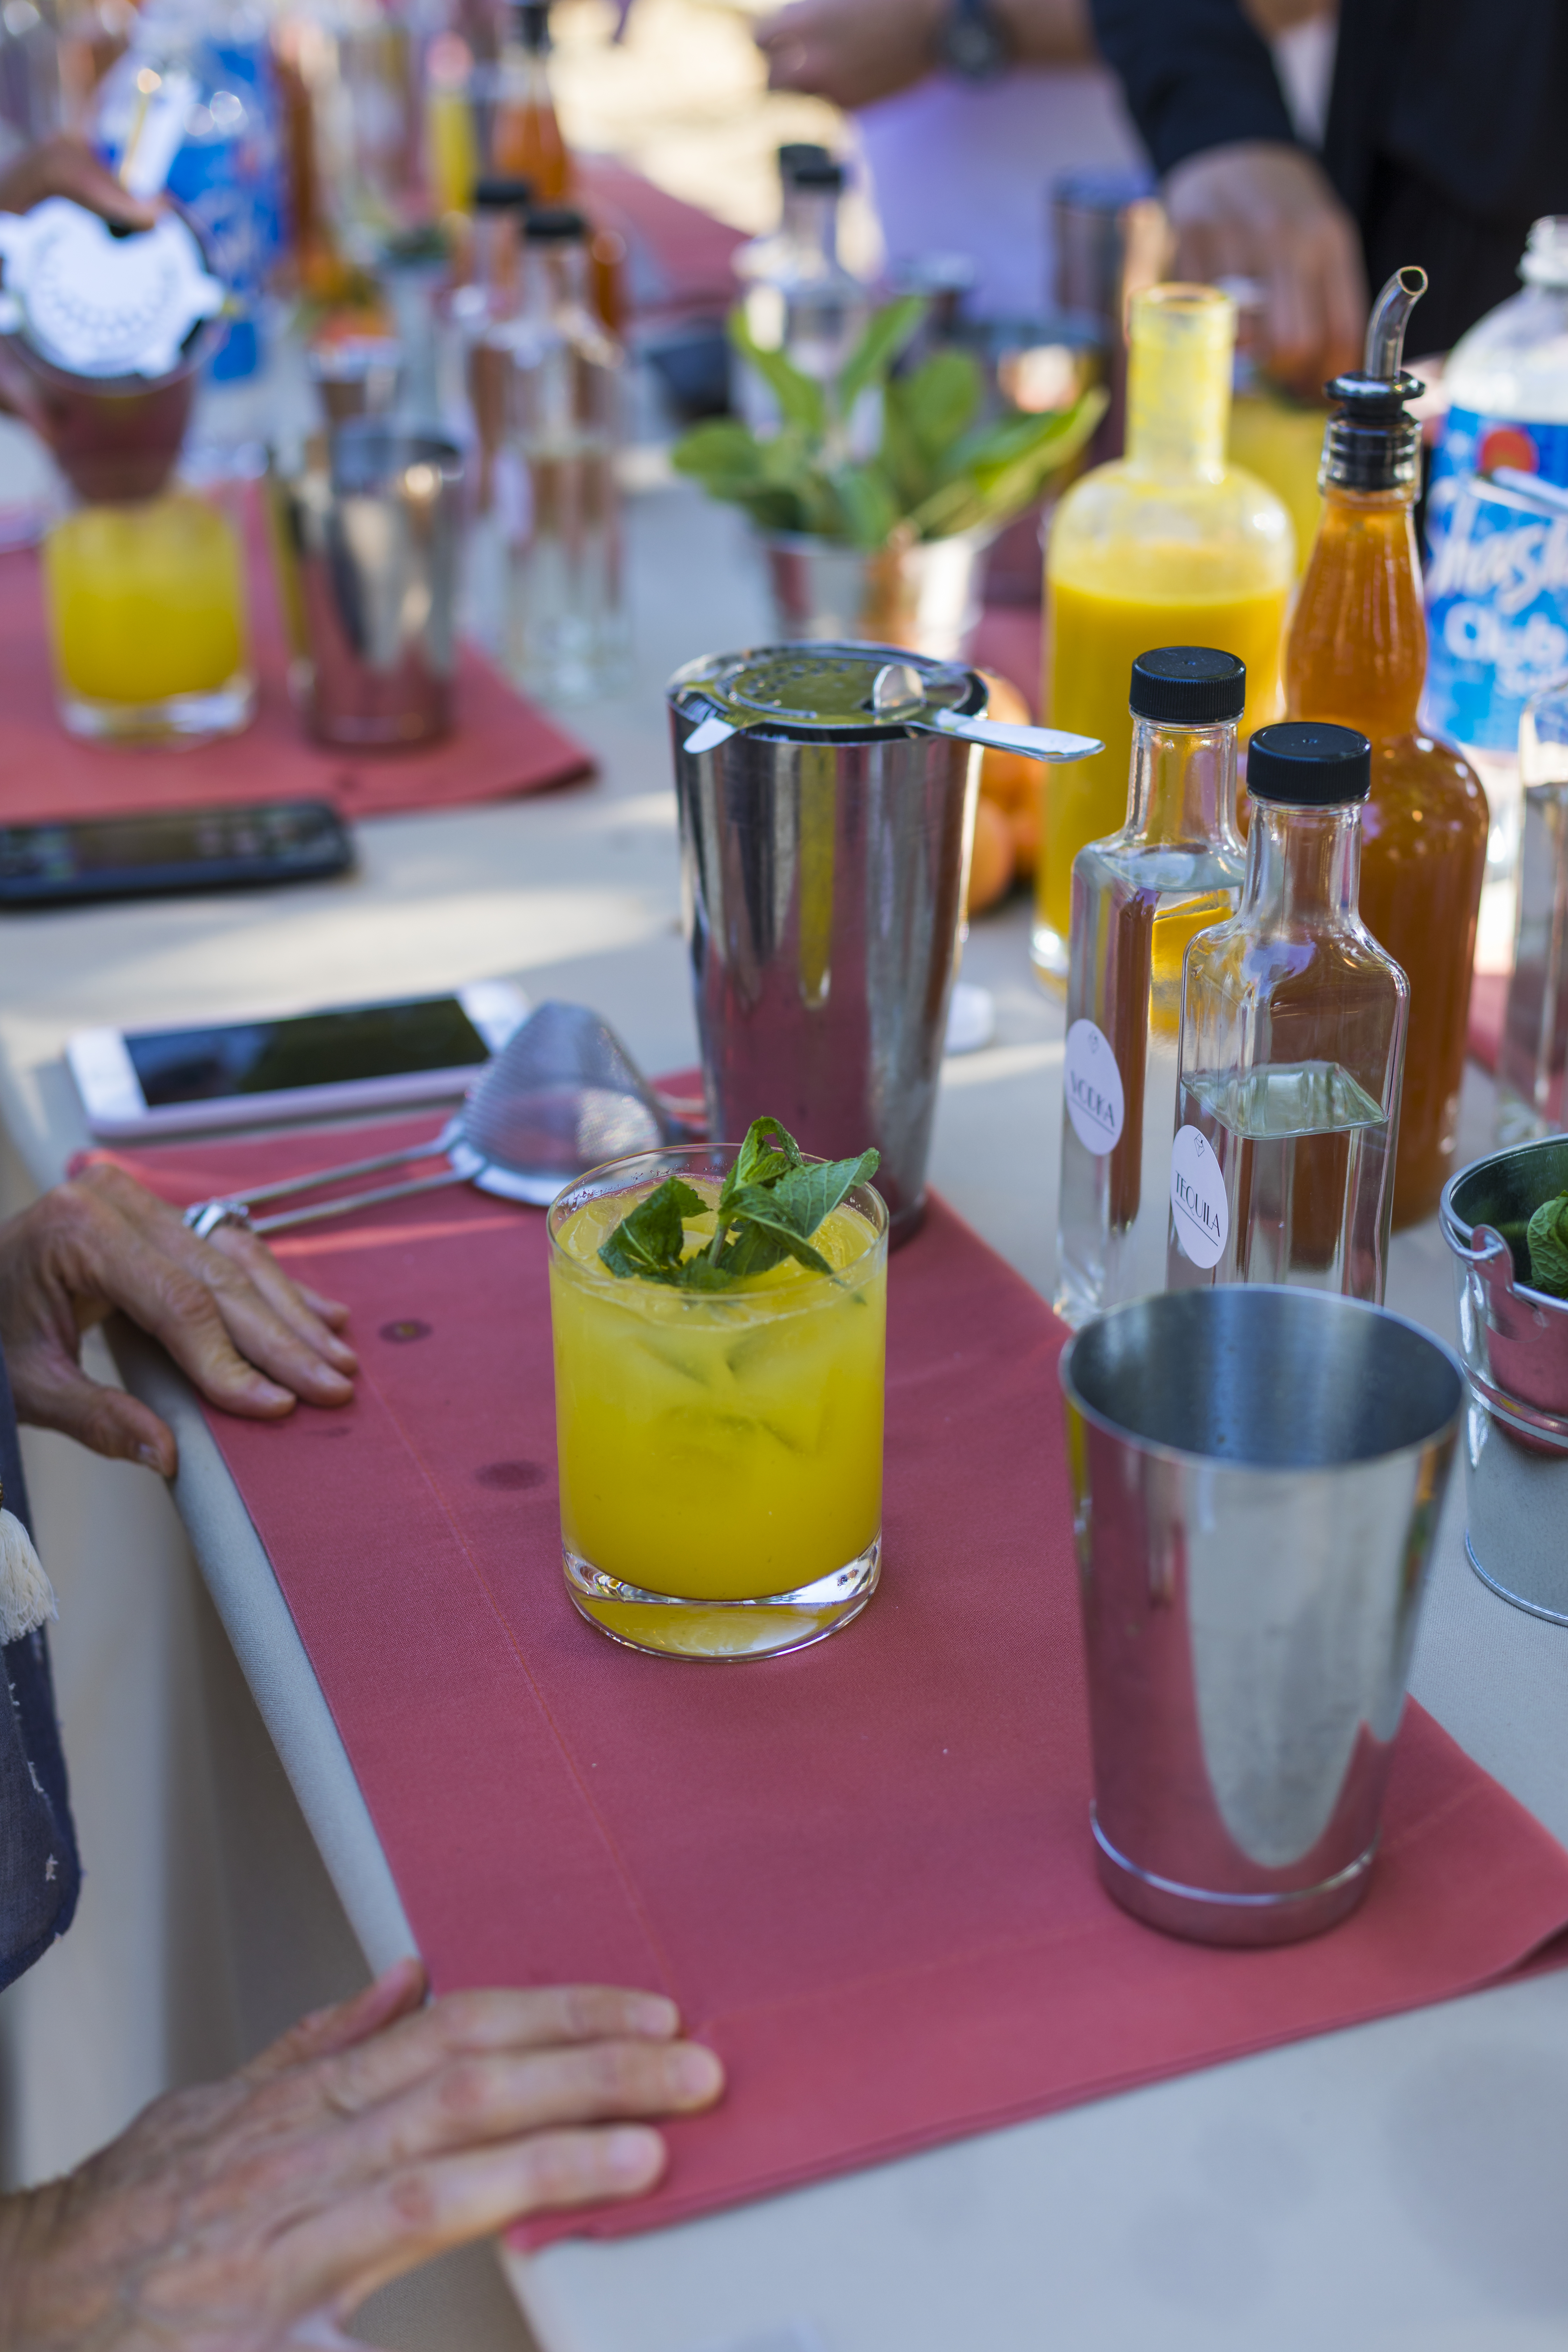 Mixology Demonstration and Interactive Experience